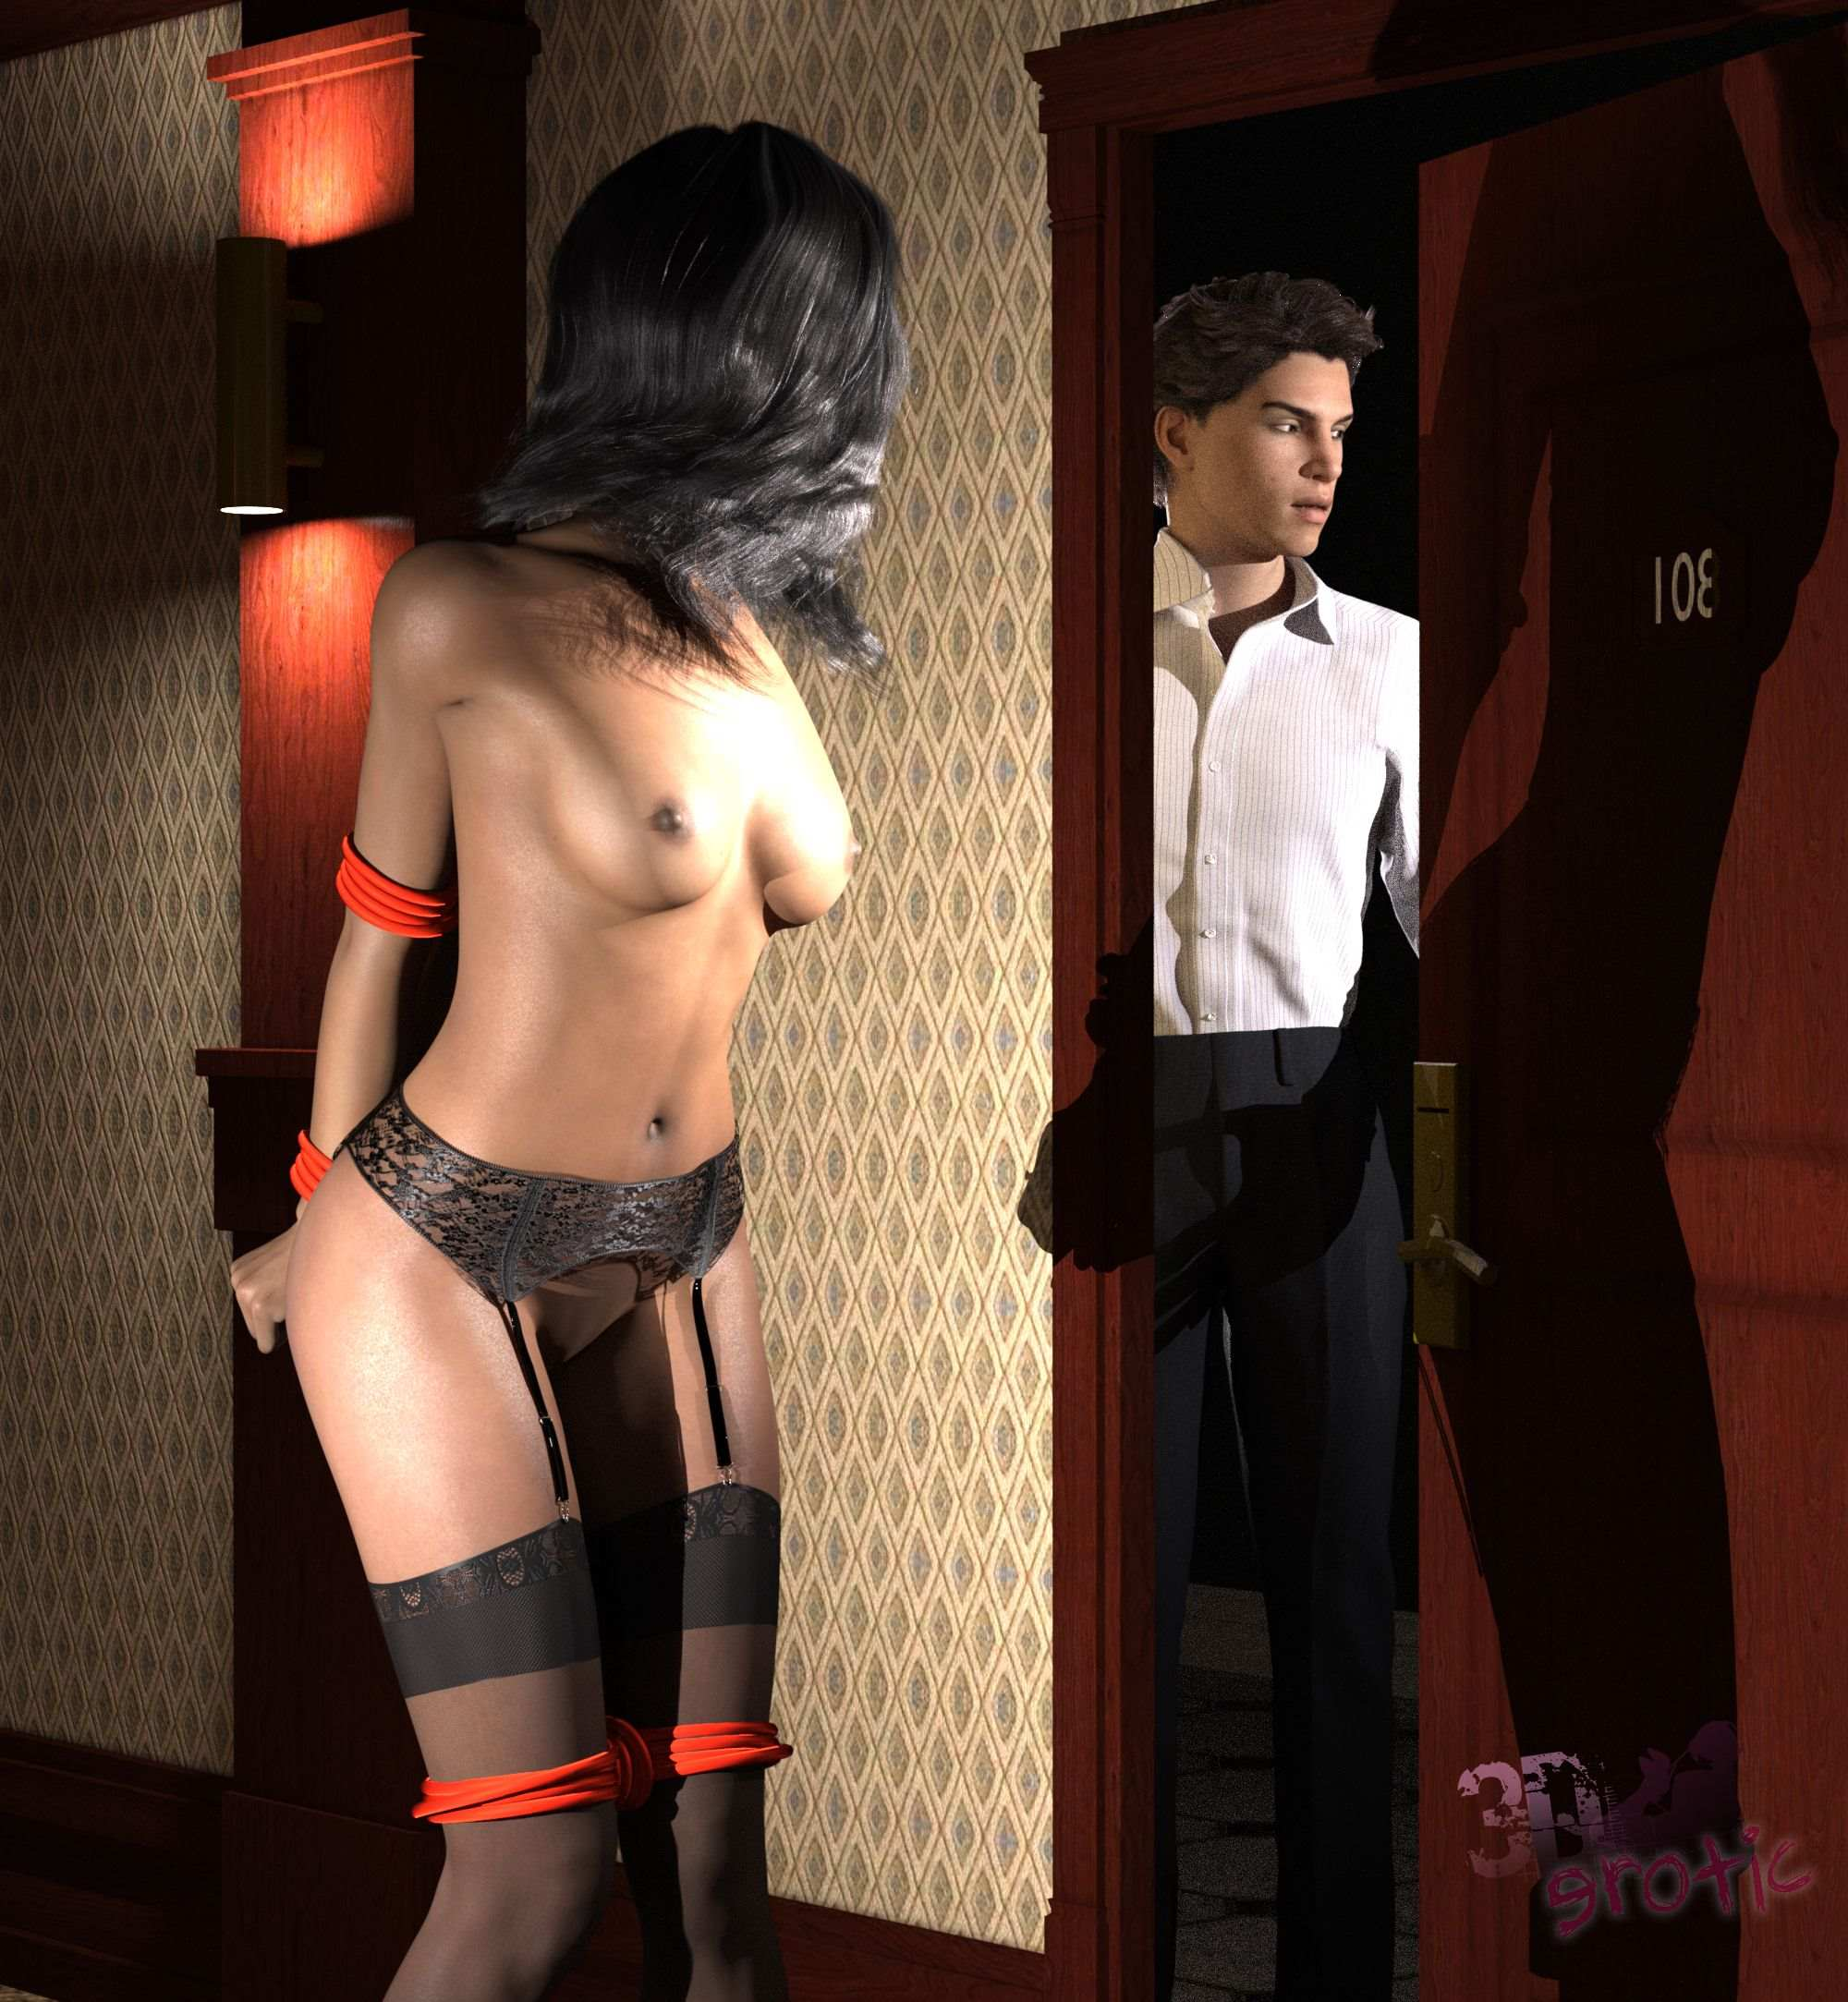 3D Erotic – The First Date